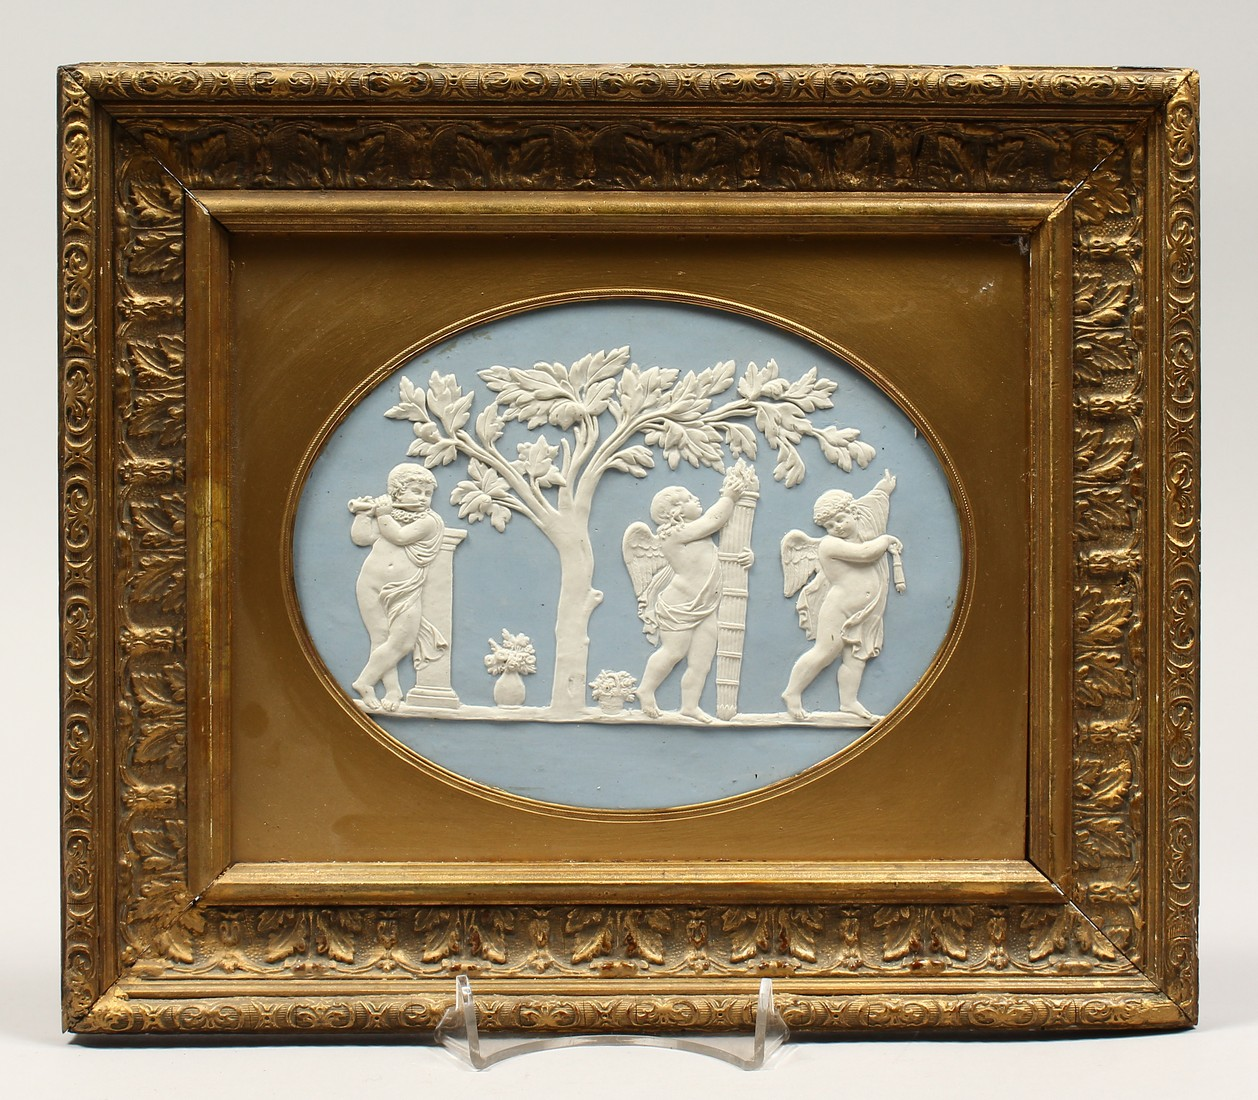 A WEDGWOOD BLUE AND WHITE GILT FRAMED PORCELAIN PLAQUE with cupids 6ins and 8ins.